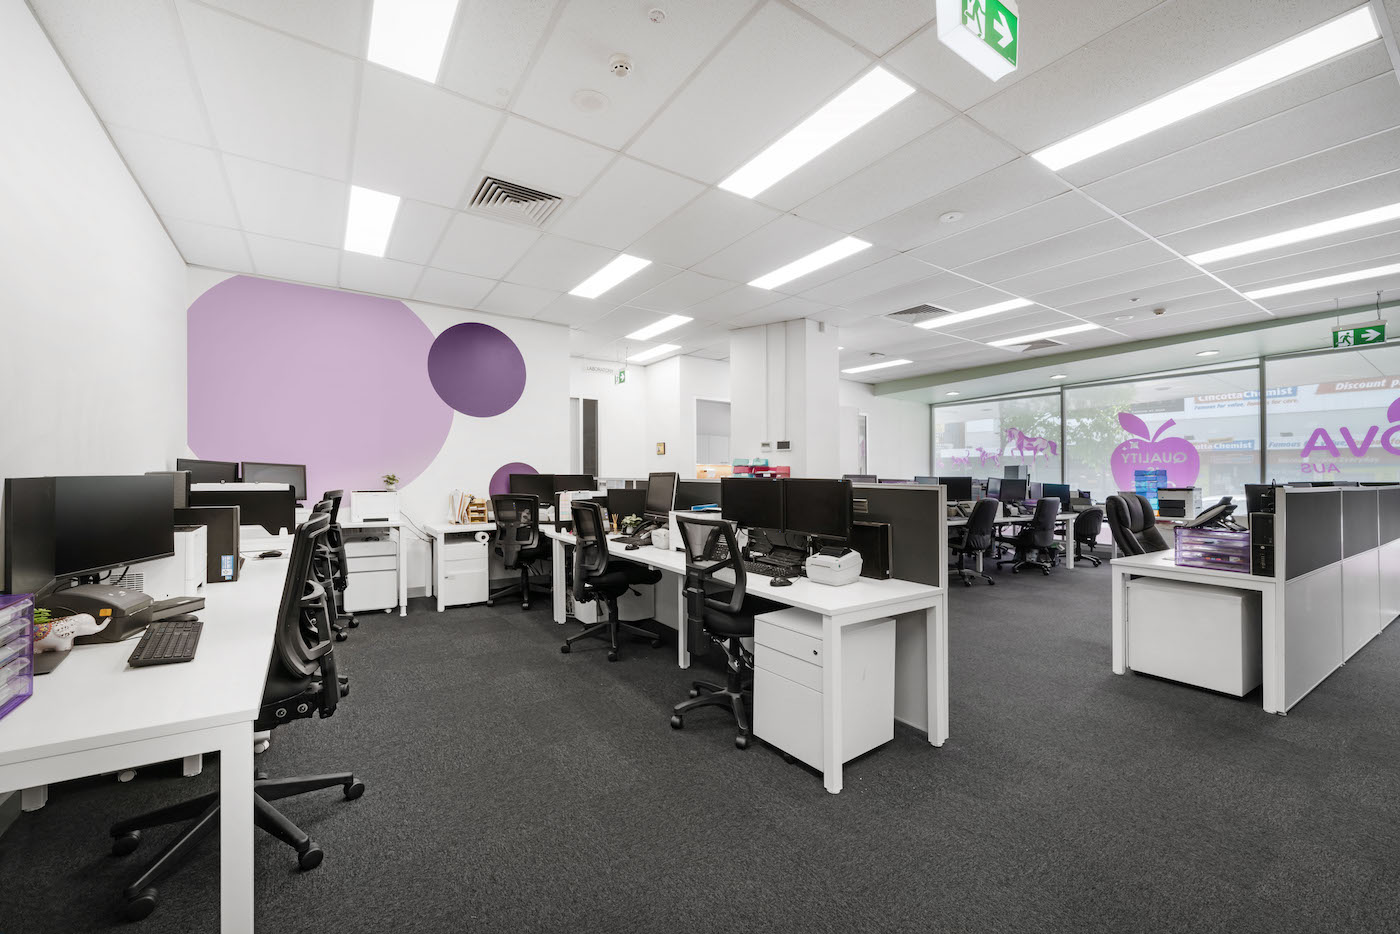 Workspace, workplace, fitout